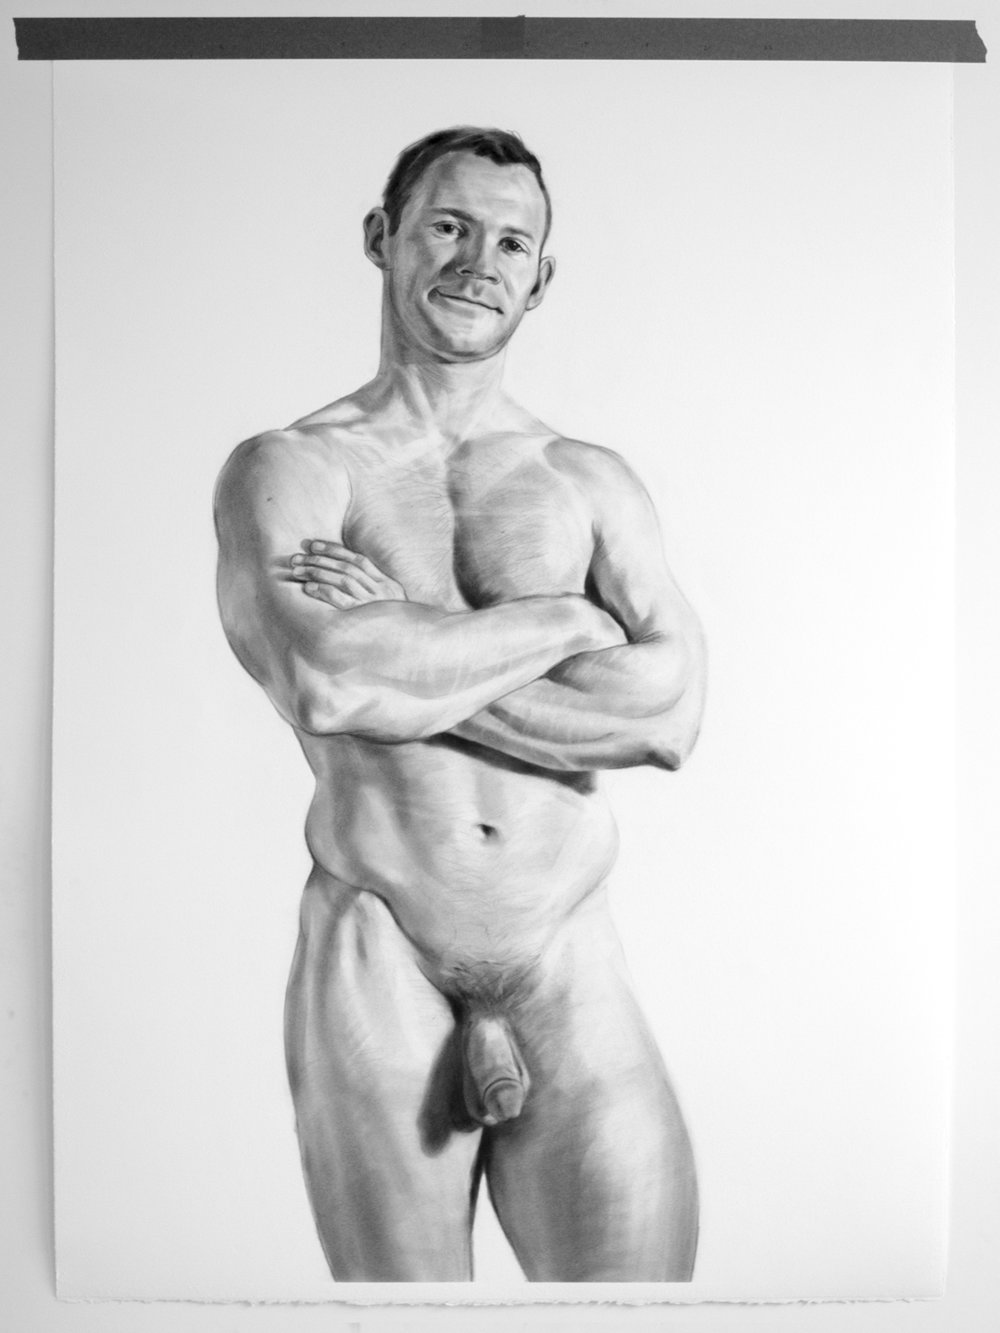 Eddie , 40x28 inches, pencil.  Photo captured from a live session and drawing was completed over a one month period.